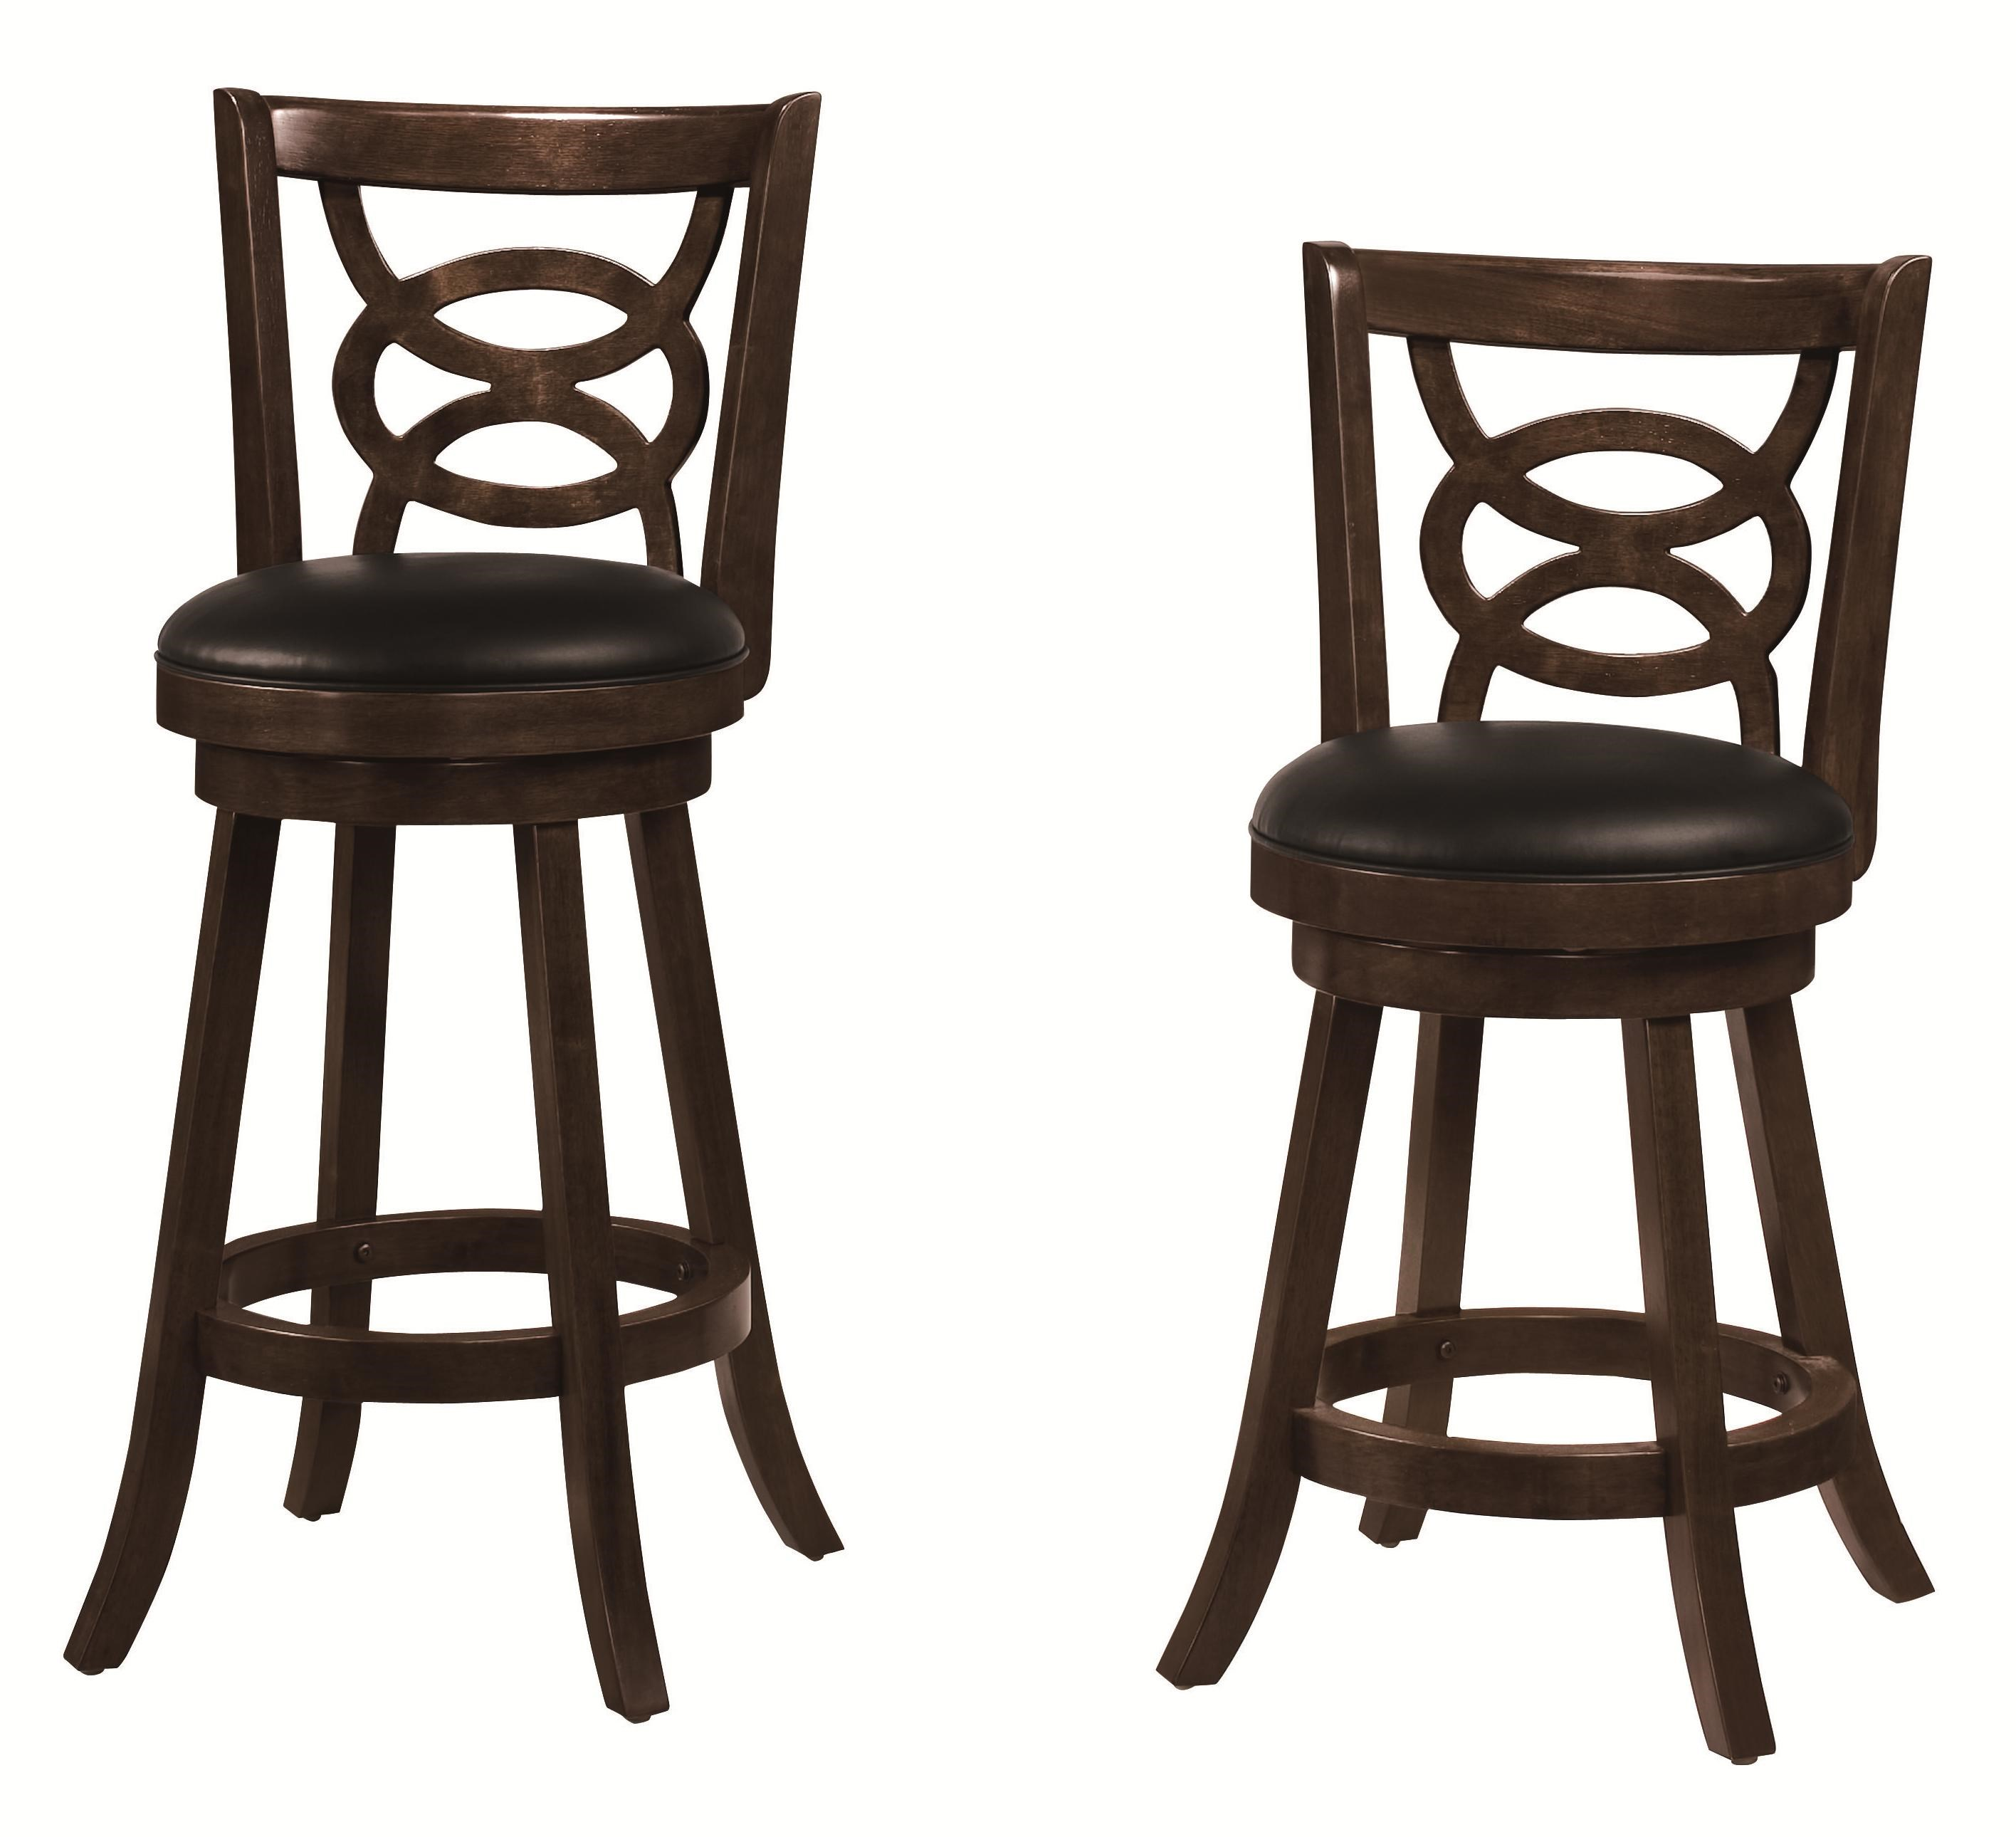 Set of 3 Solid Wood Merlot Swivel Bar Stool Chair by Coaster 101930